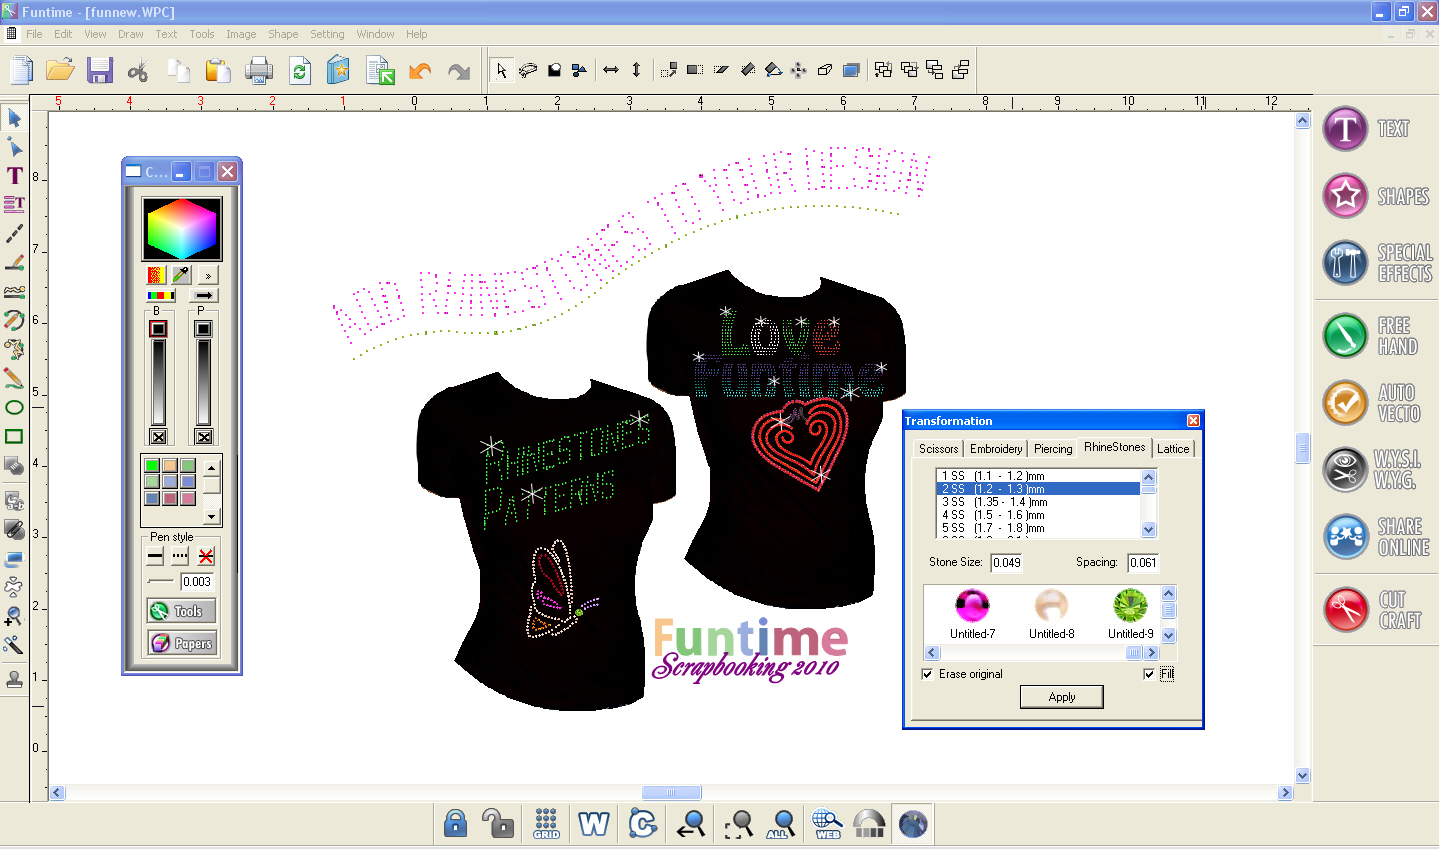 Funtime Scrapbooking Pro 2010 Cutting Software Auto